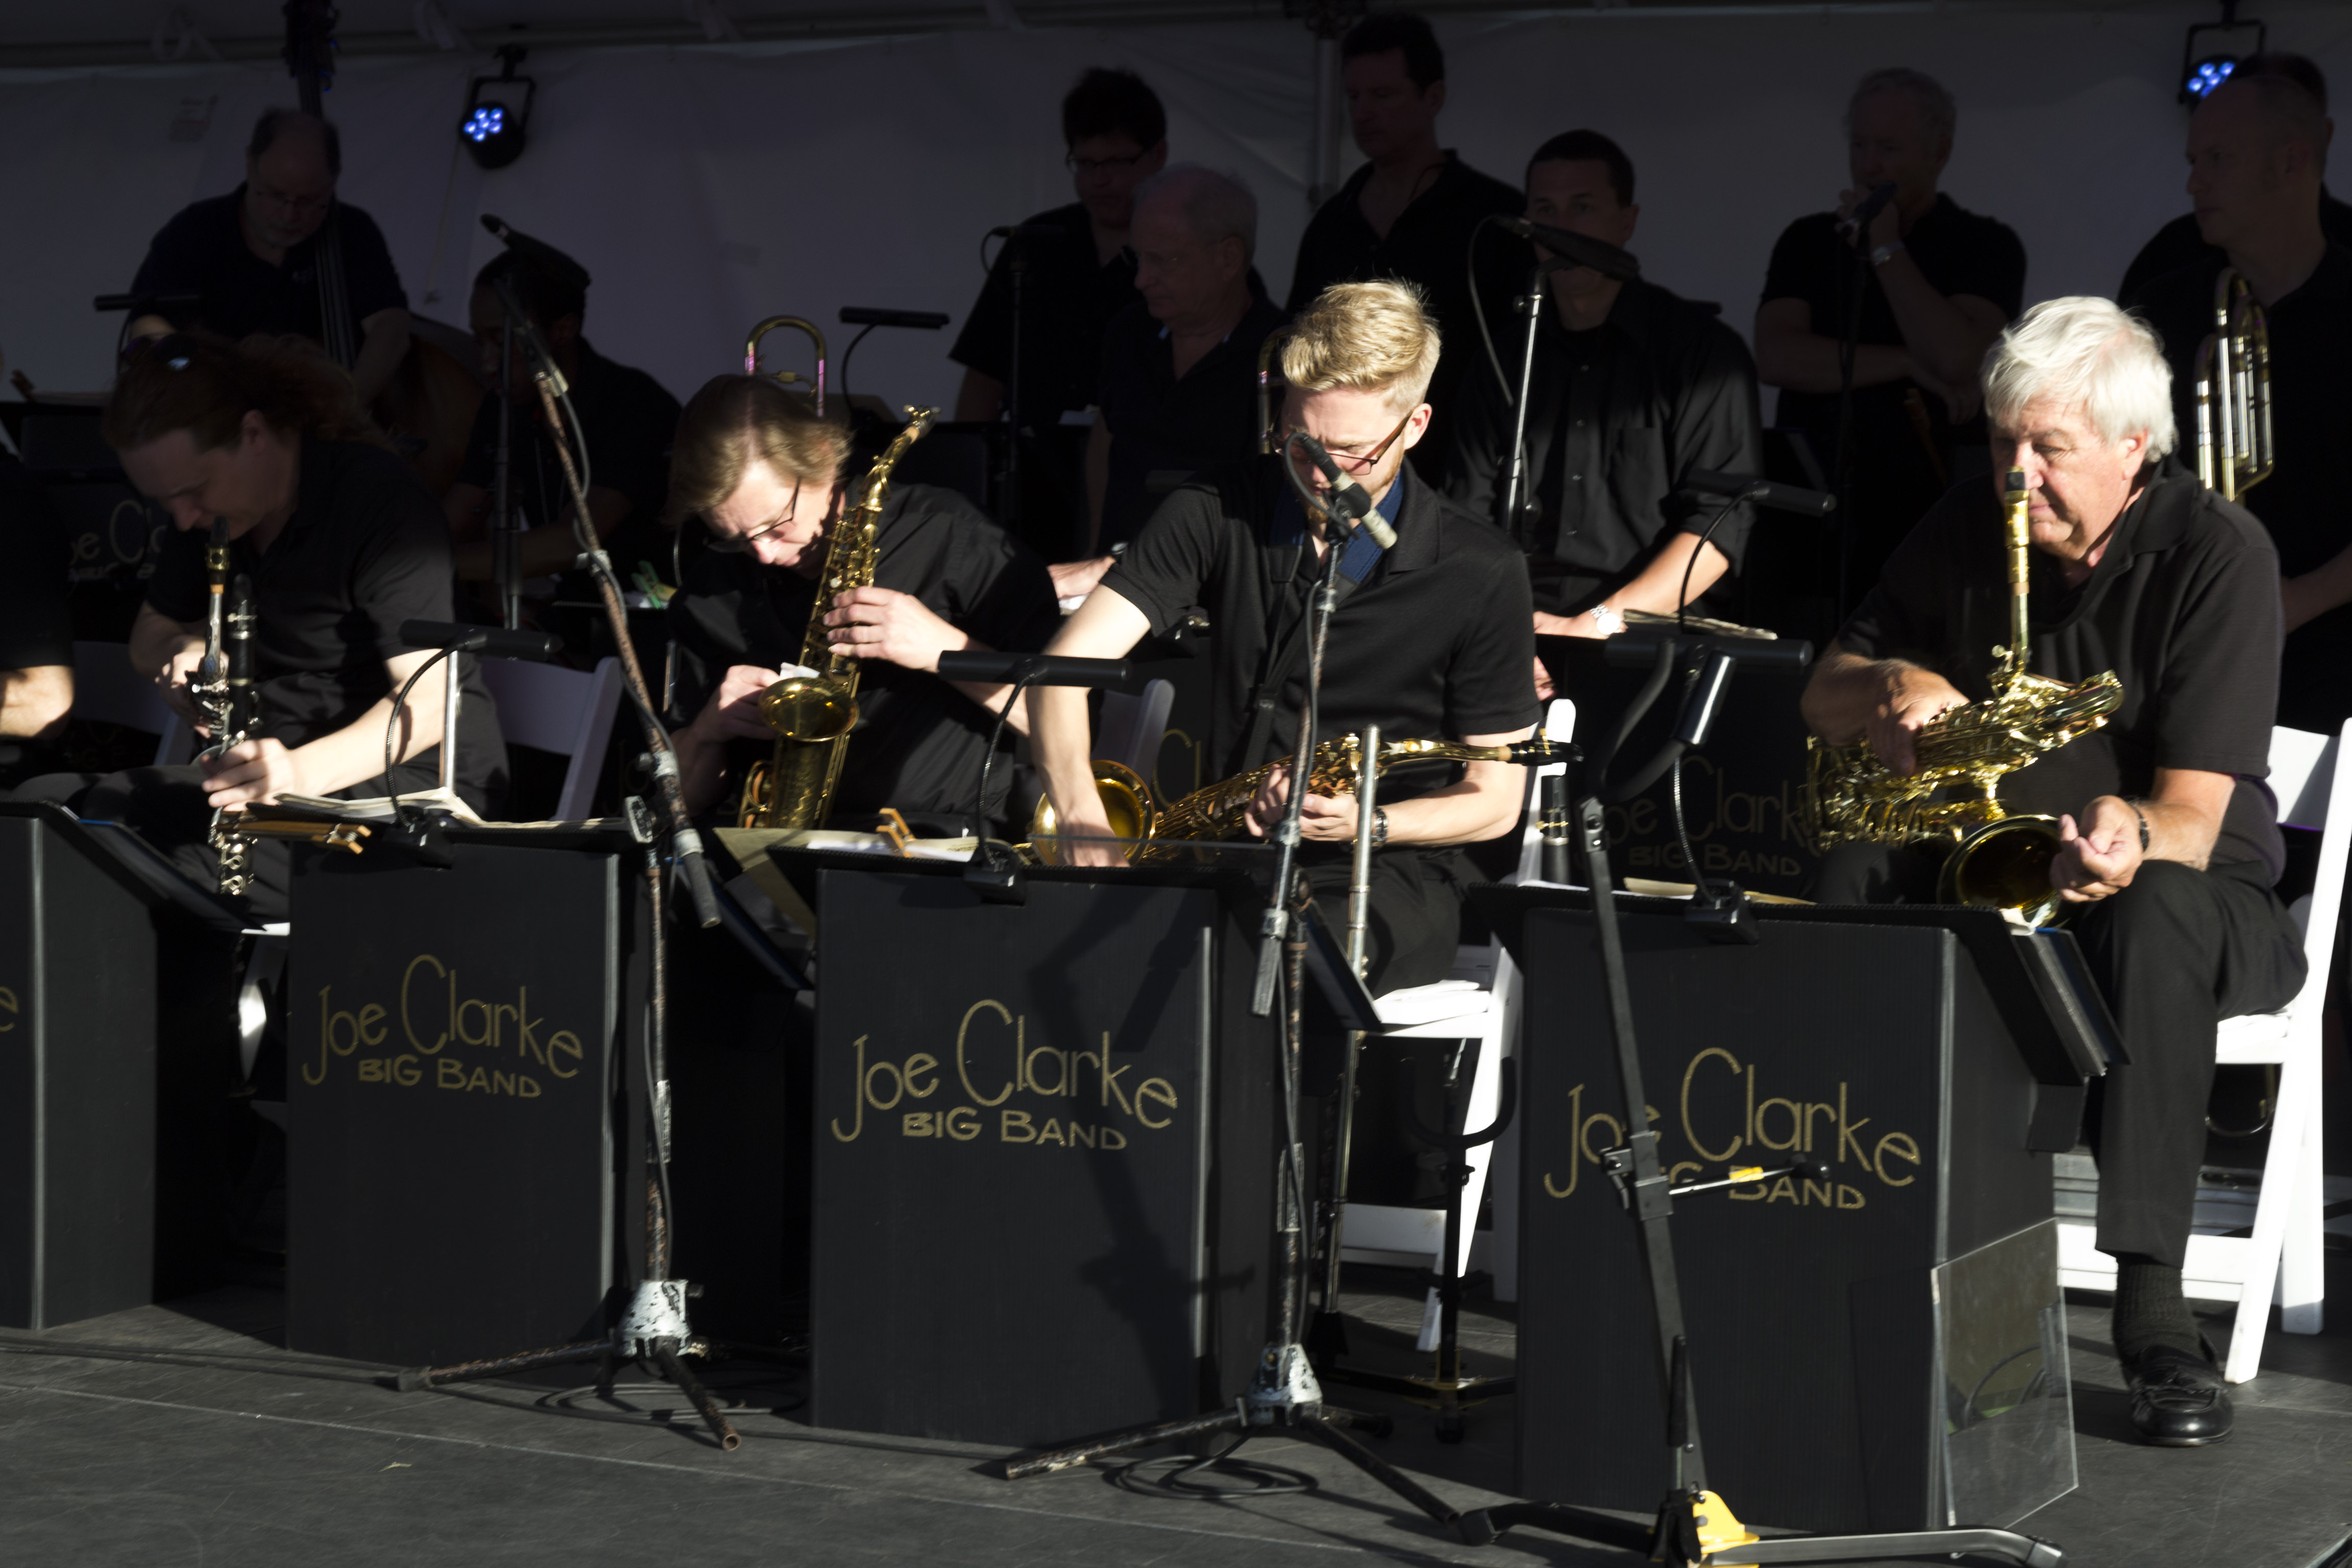 The Joe Clarke Big Band delighted crowds with songs from the 1930s and 40s.